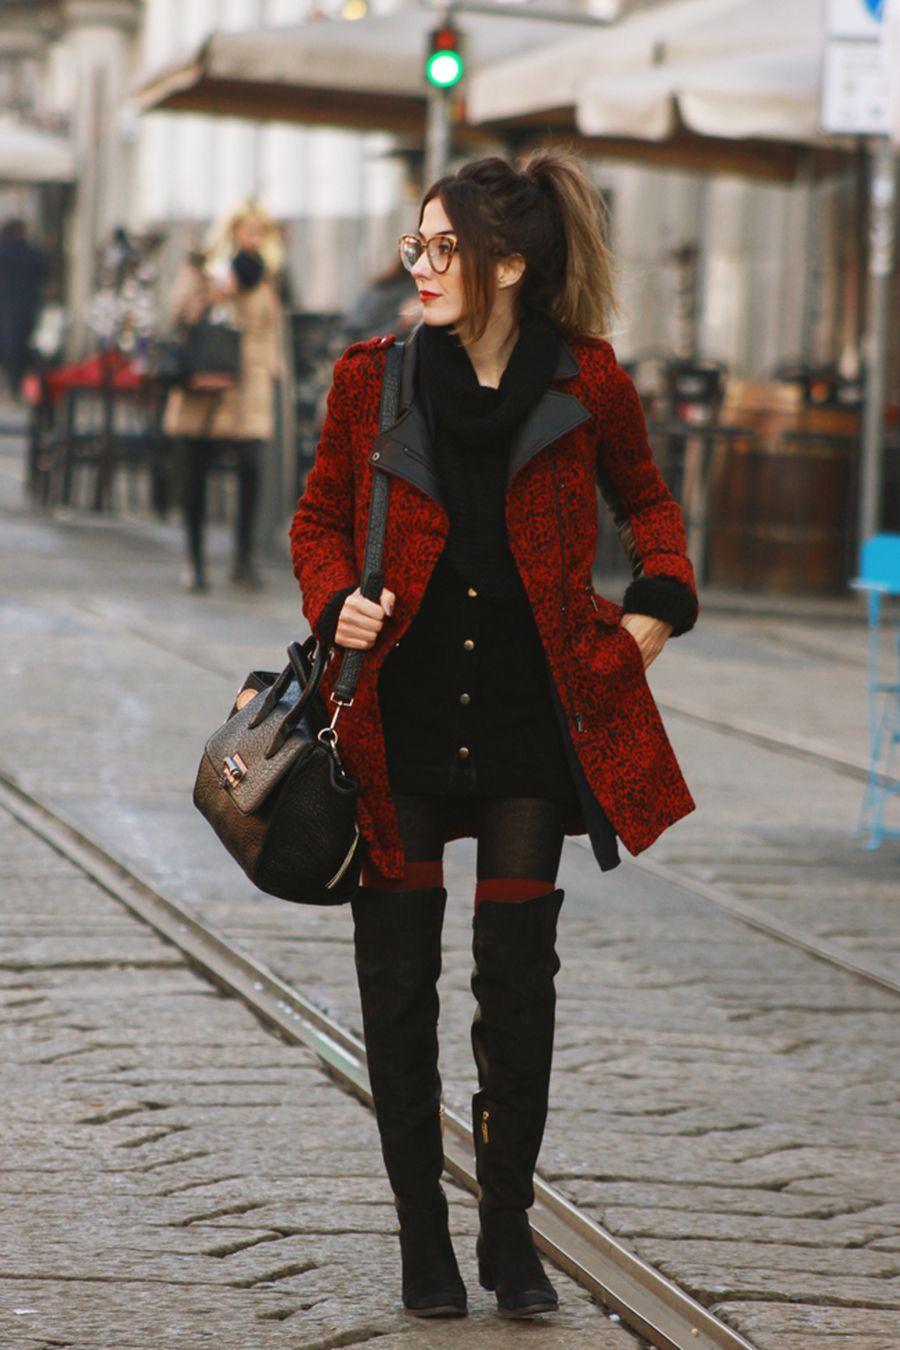 Inspiring skirt and boots combinations for fall and winter outfits 85